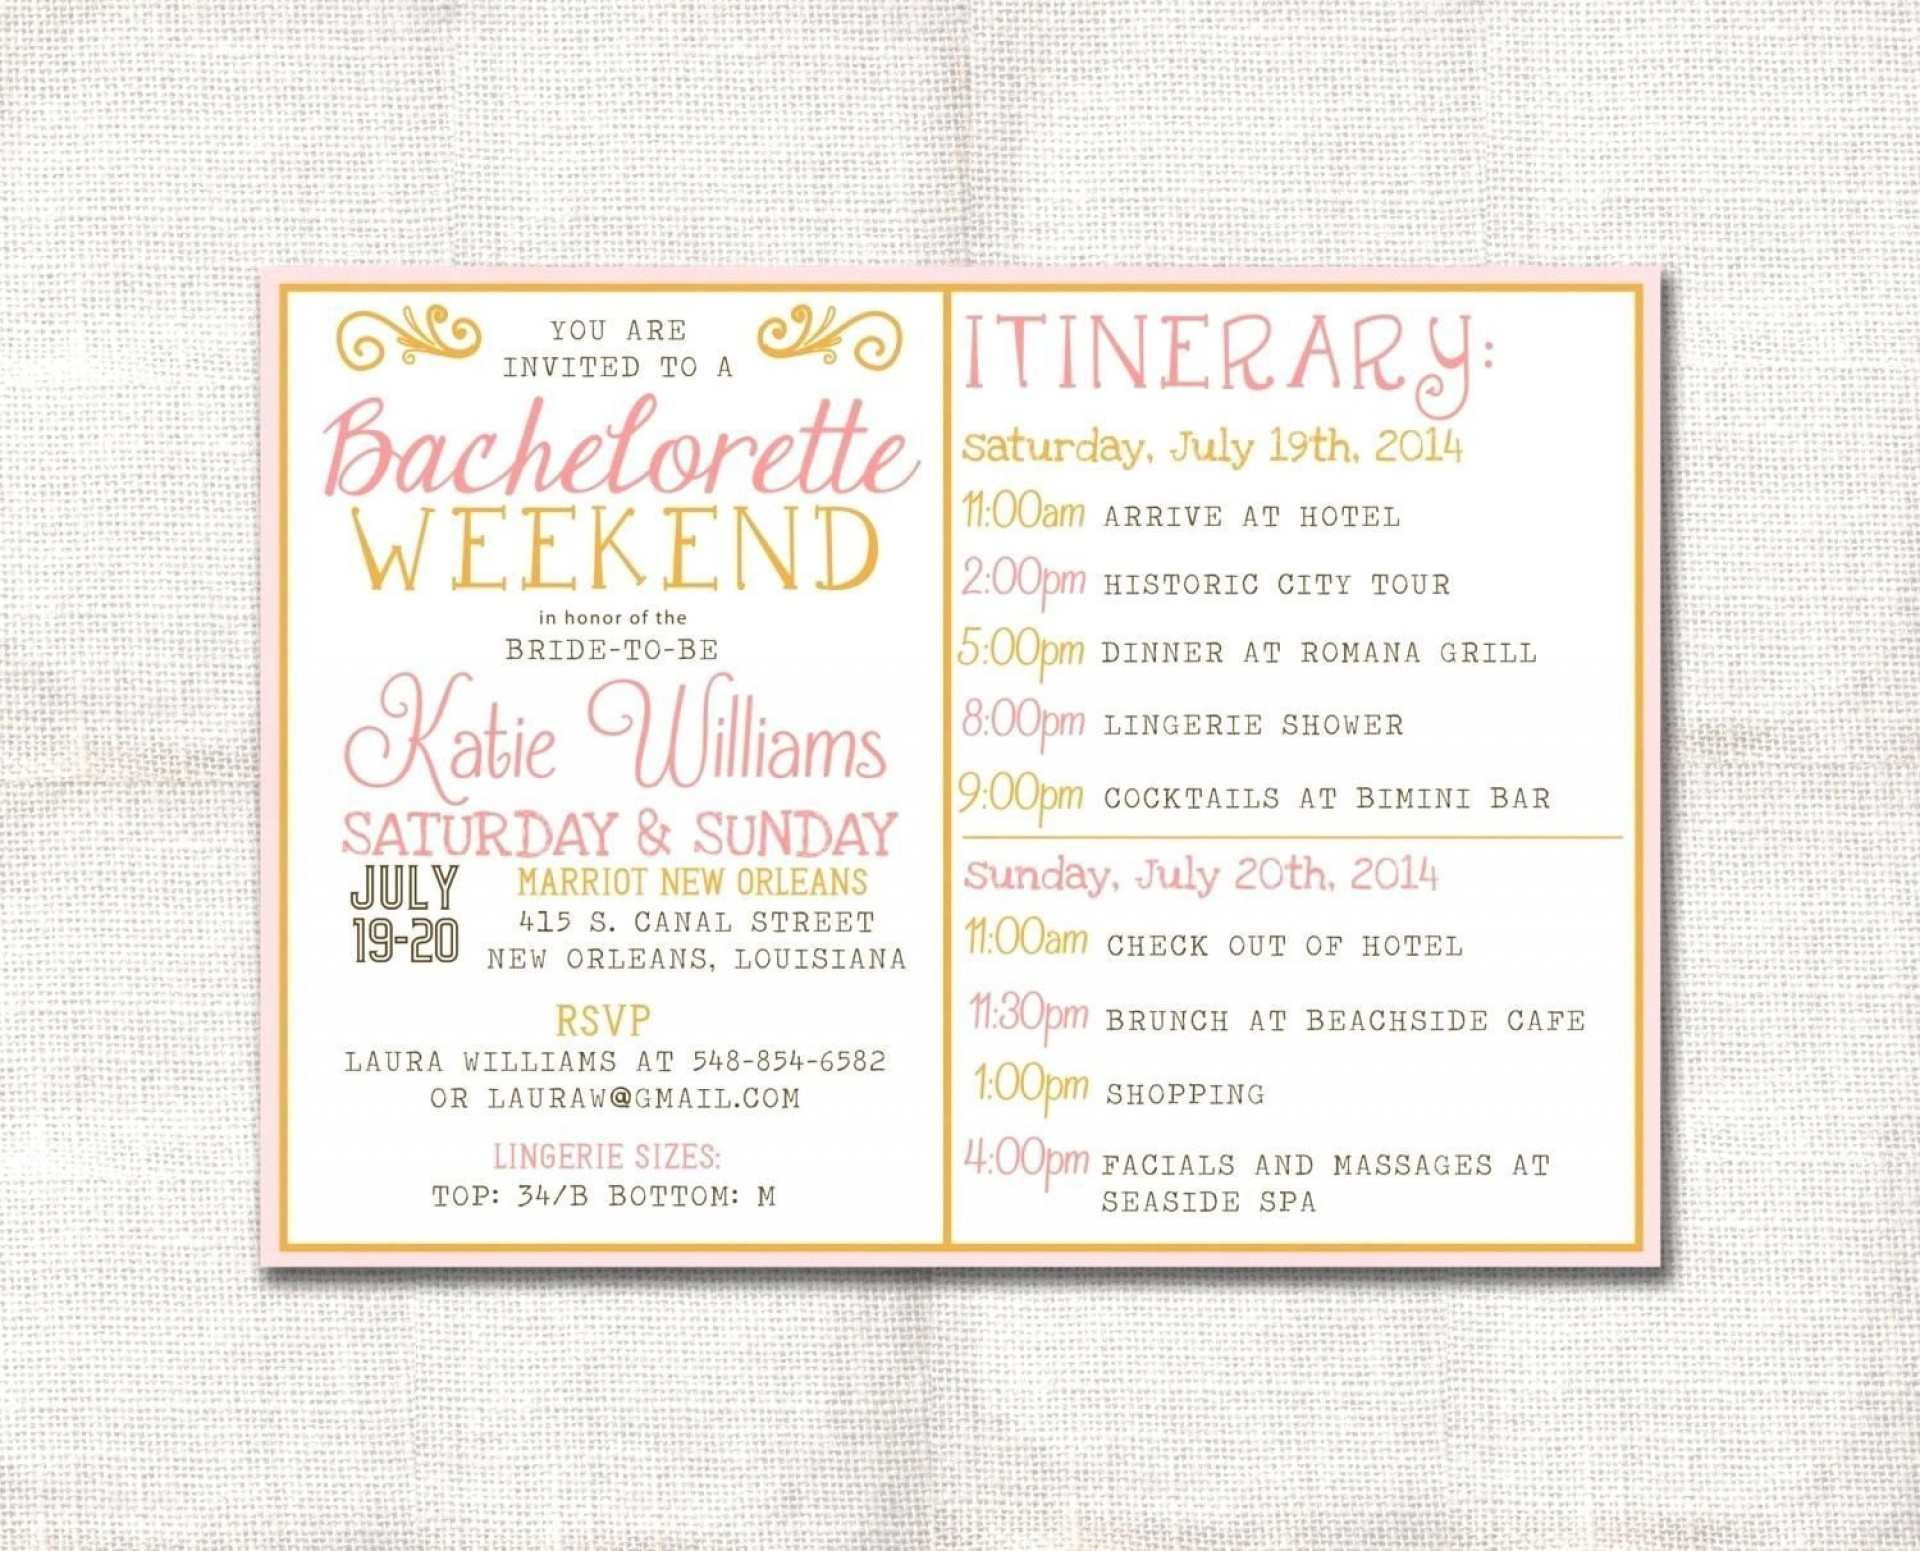 004 Breathtaking Bachelorette Itinerary Template Free Image  Party Editable Download1920